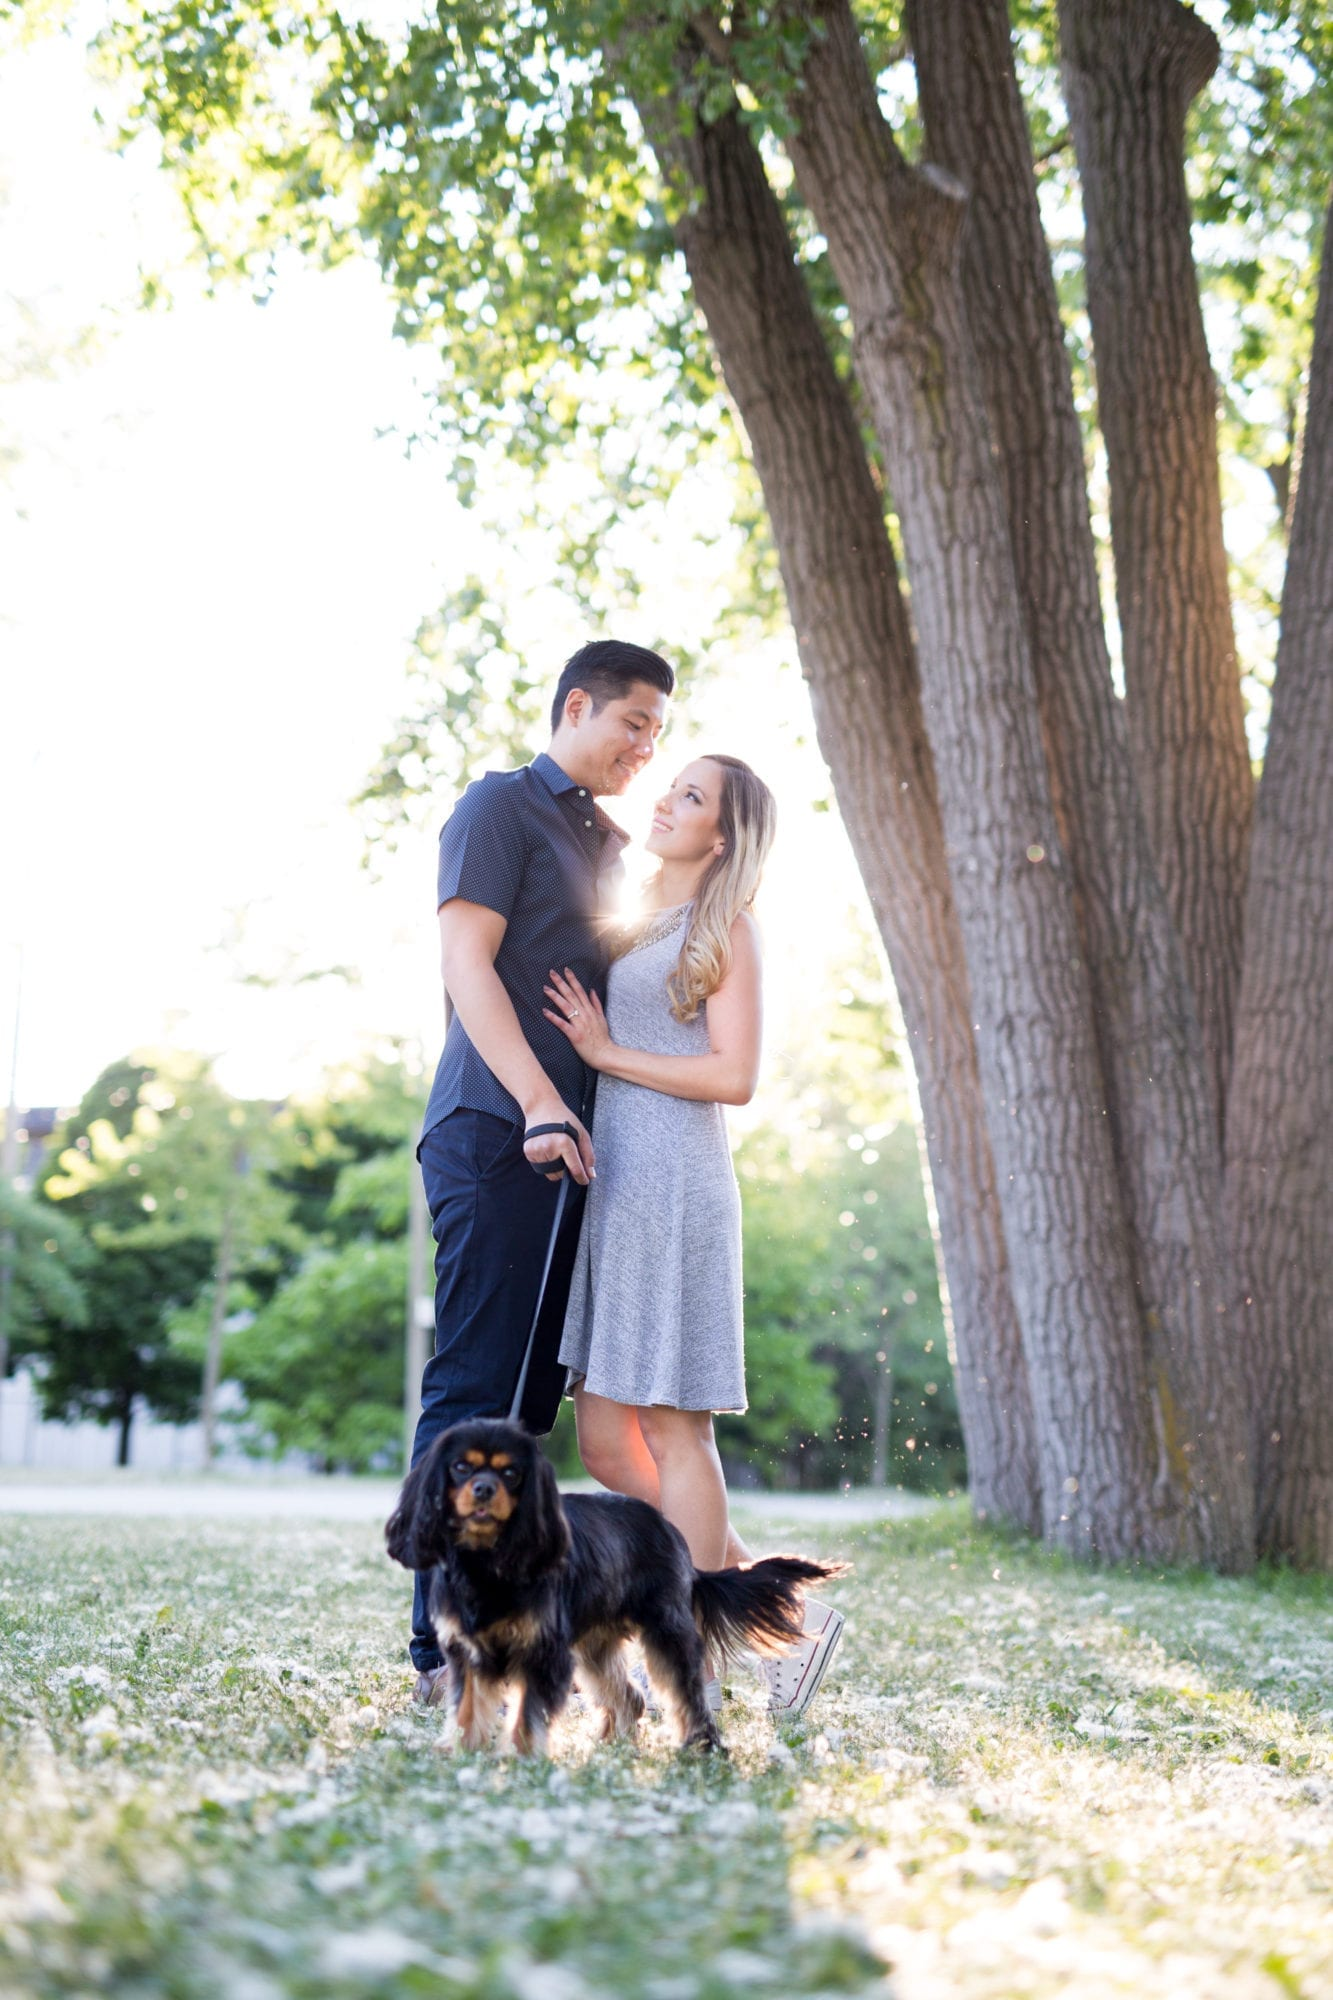 Couple Park Toronto Engagement Zsuzsi Pal Photography